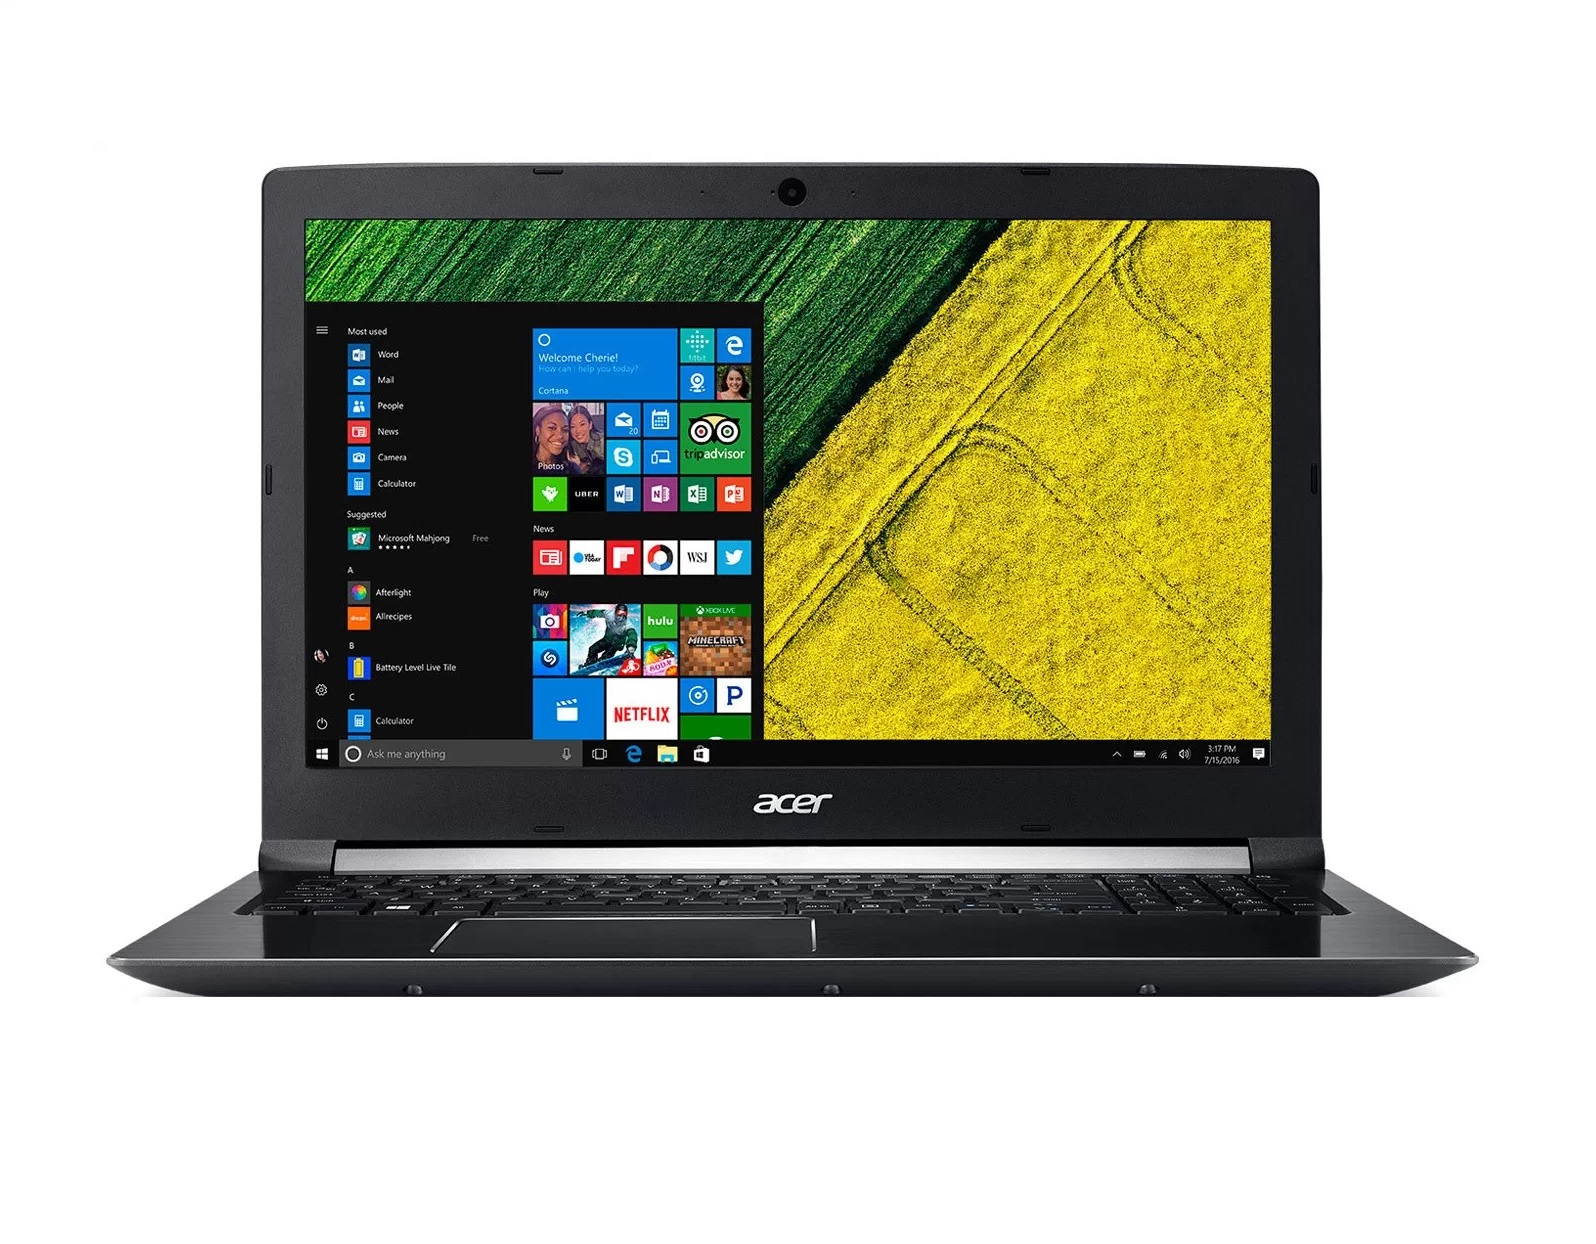 Acer Aspire 7 15 inch Laptop